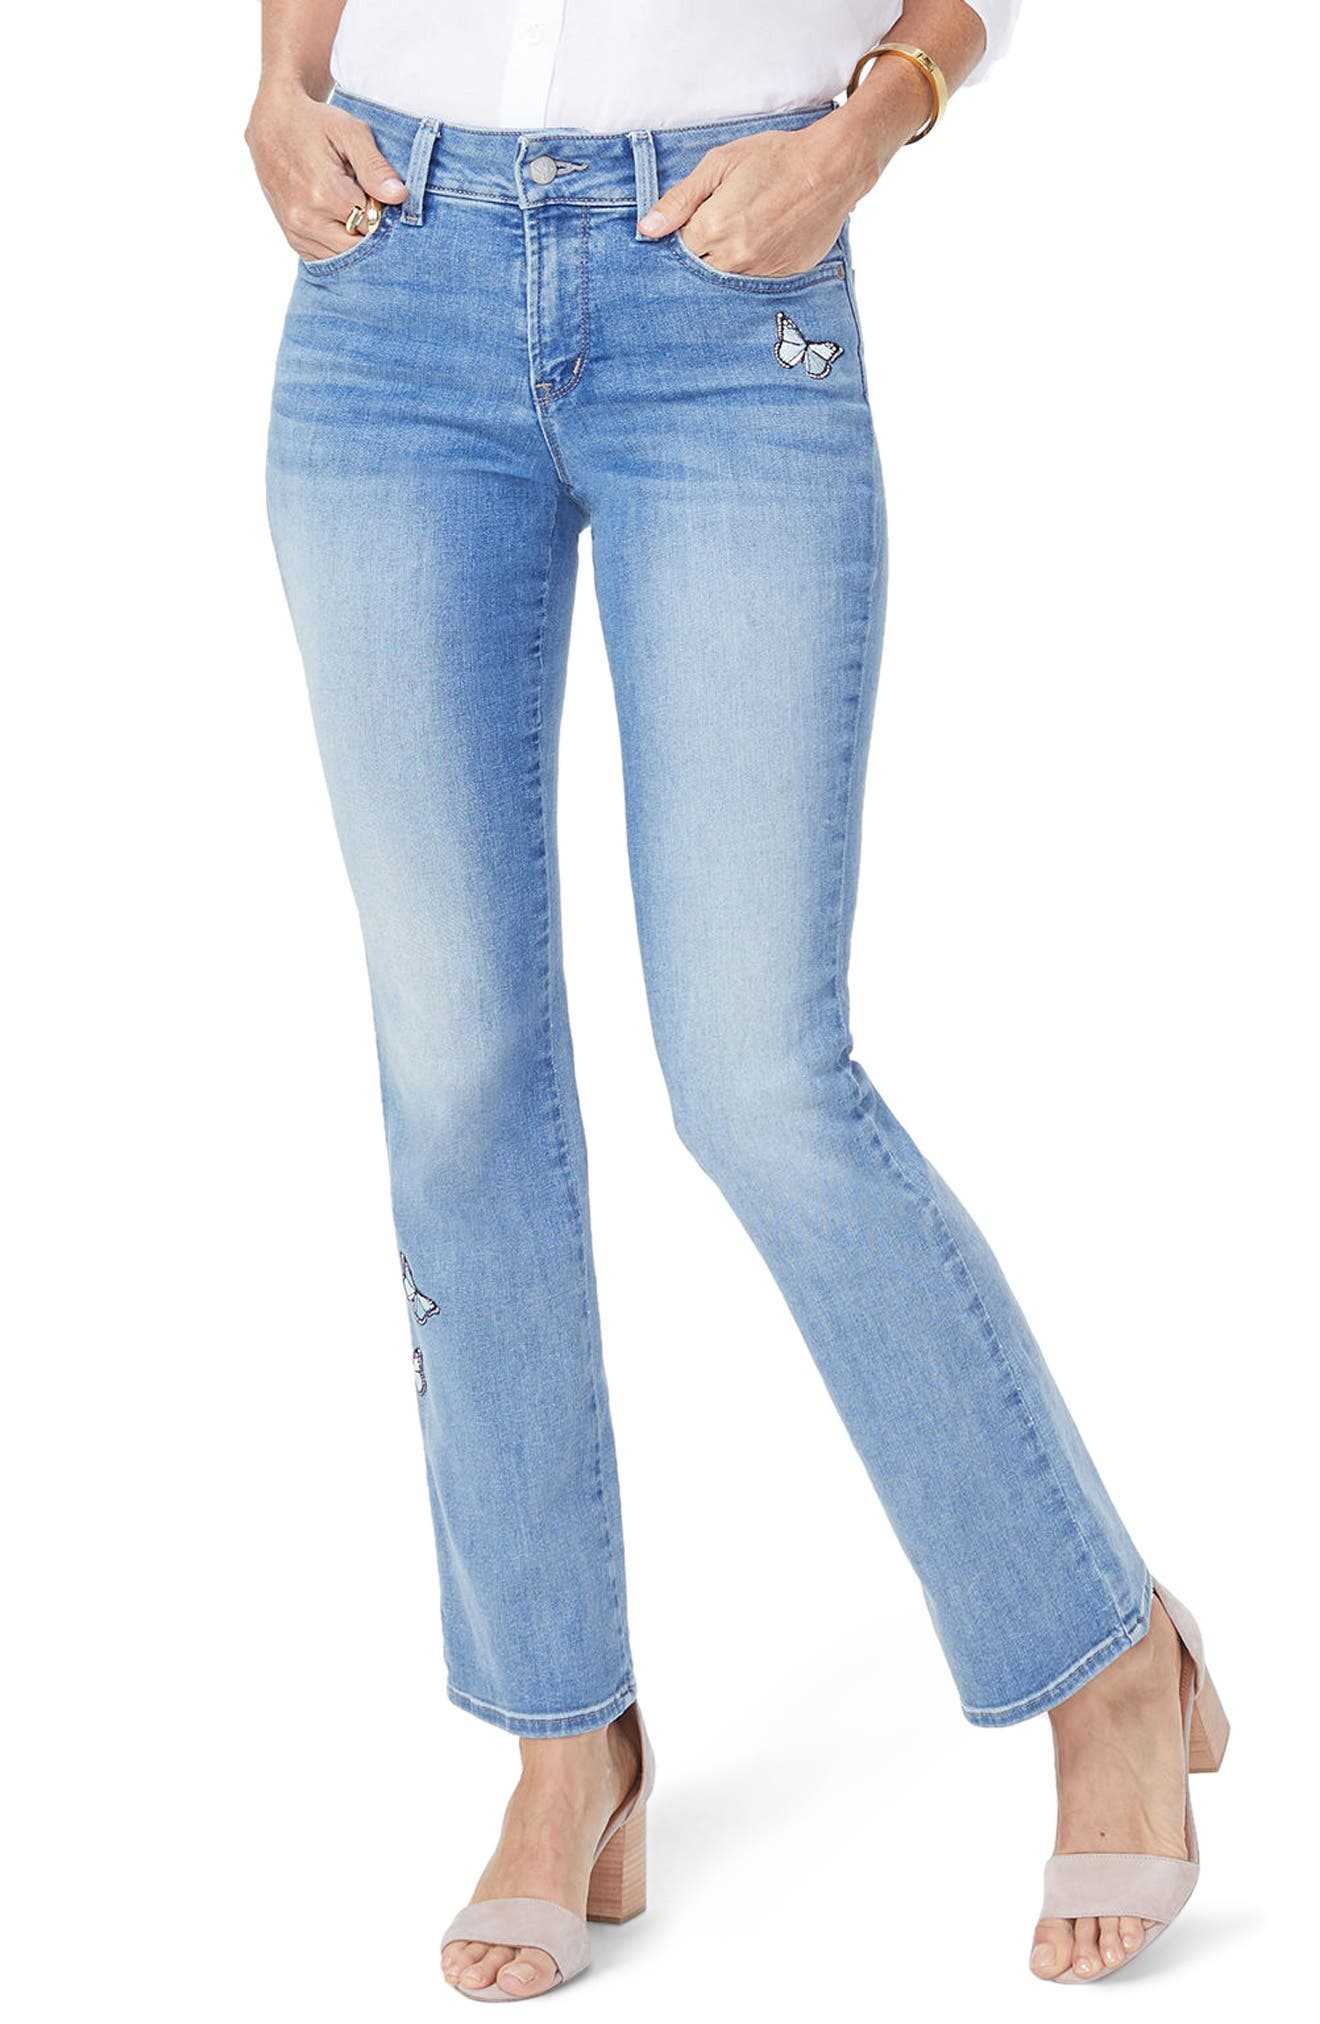 Barbara Butterfly Bootcut Jeans,                         Main,                         color, Dream State